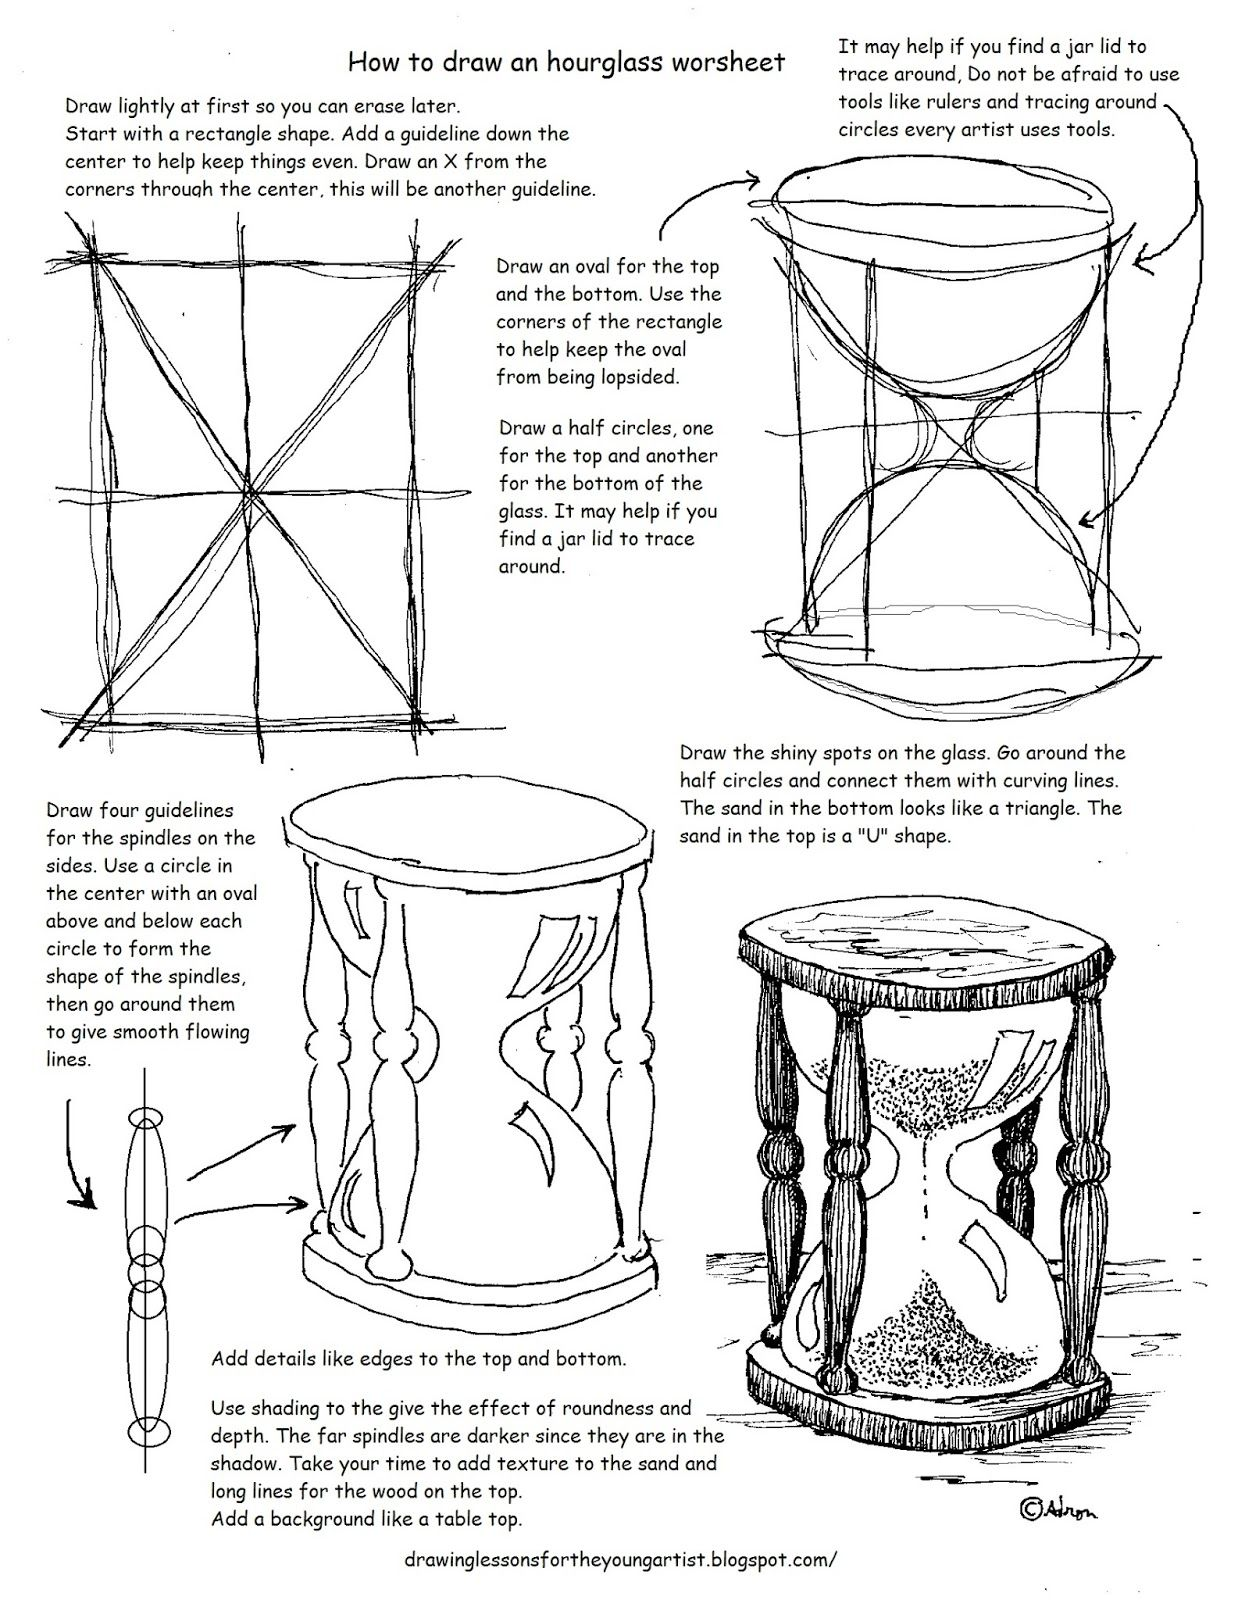 worksheet Drawing Worksheets how to draw worksheets for the young artist printable an hourglass worksheet